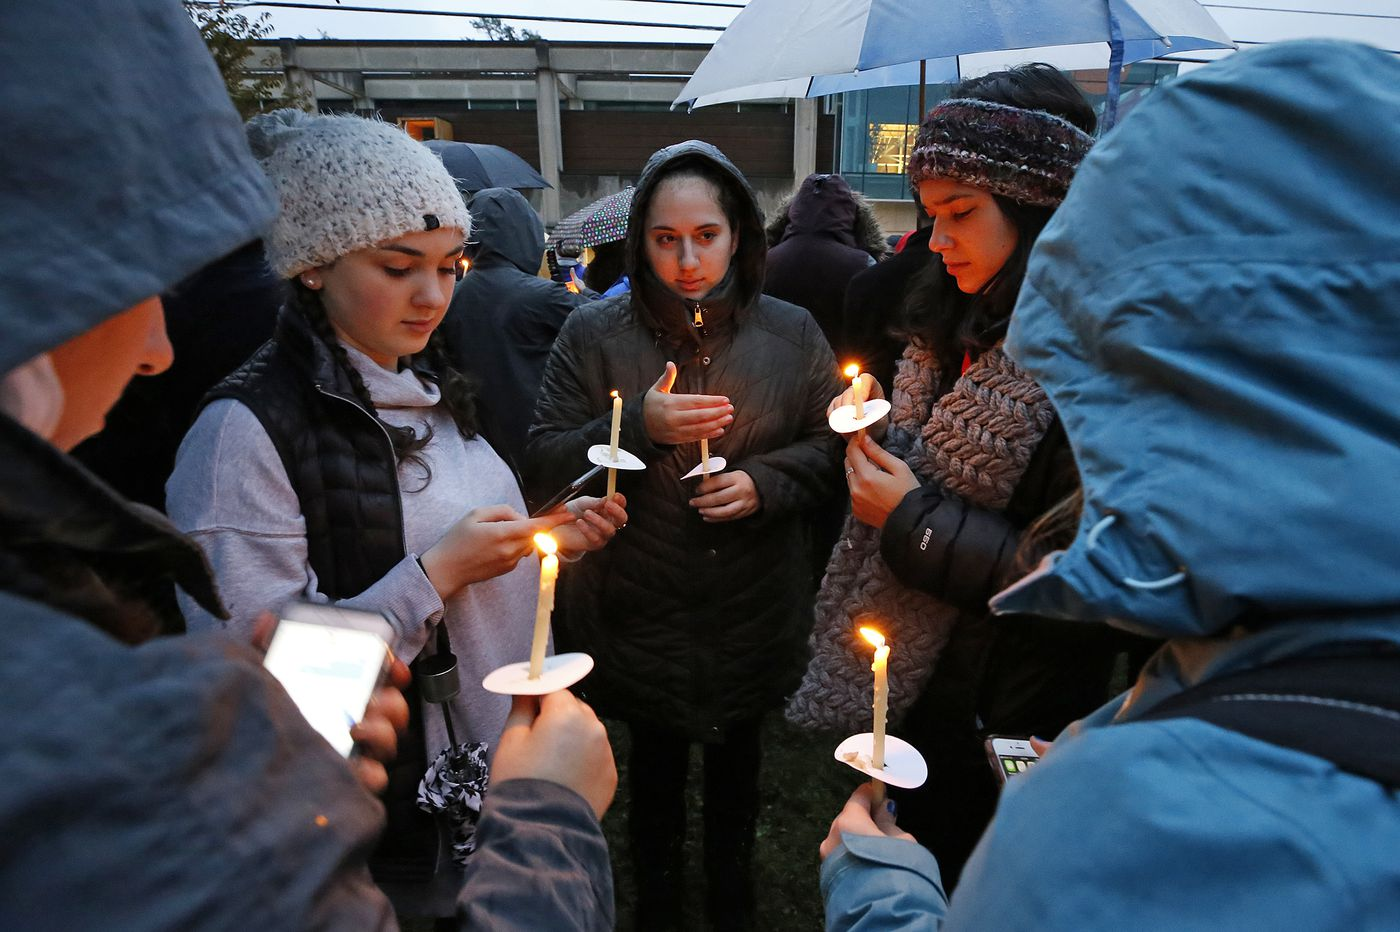 Vigils planned for victims of Pittsburgh synagogue mass shooting | Morning Newsletter